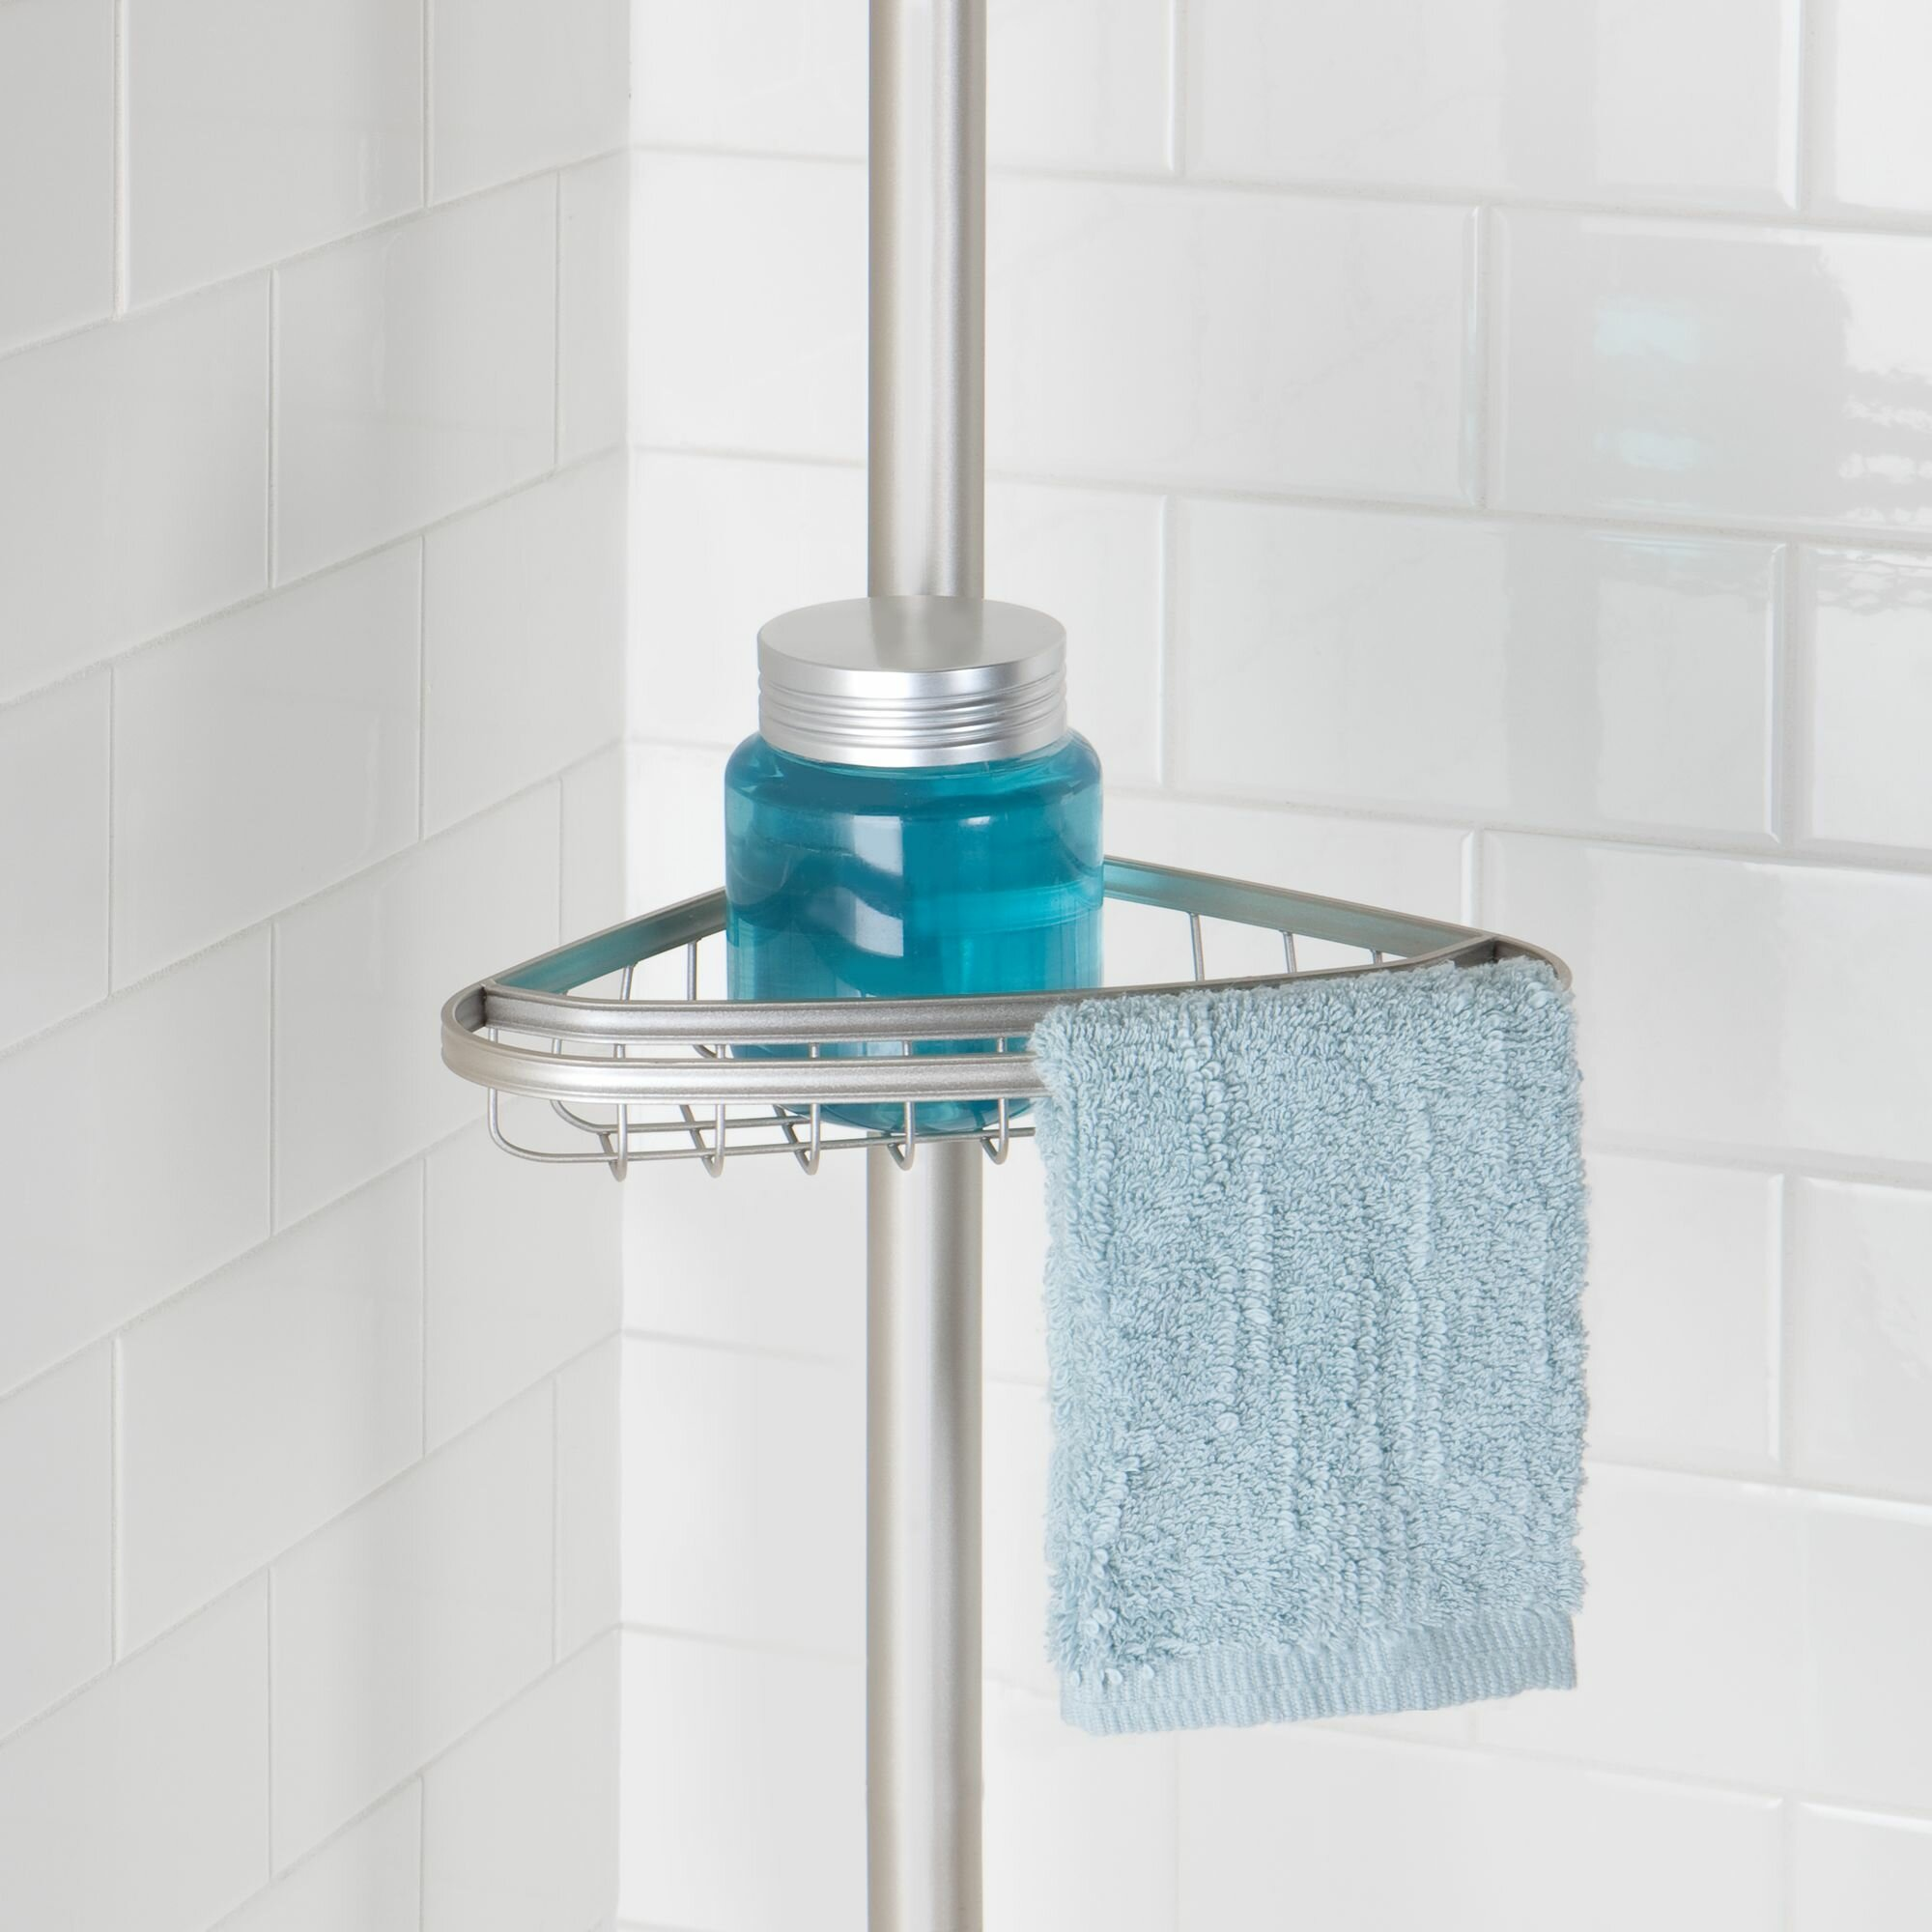 InterDesign York Shower Caddy | Wayfair